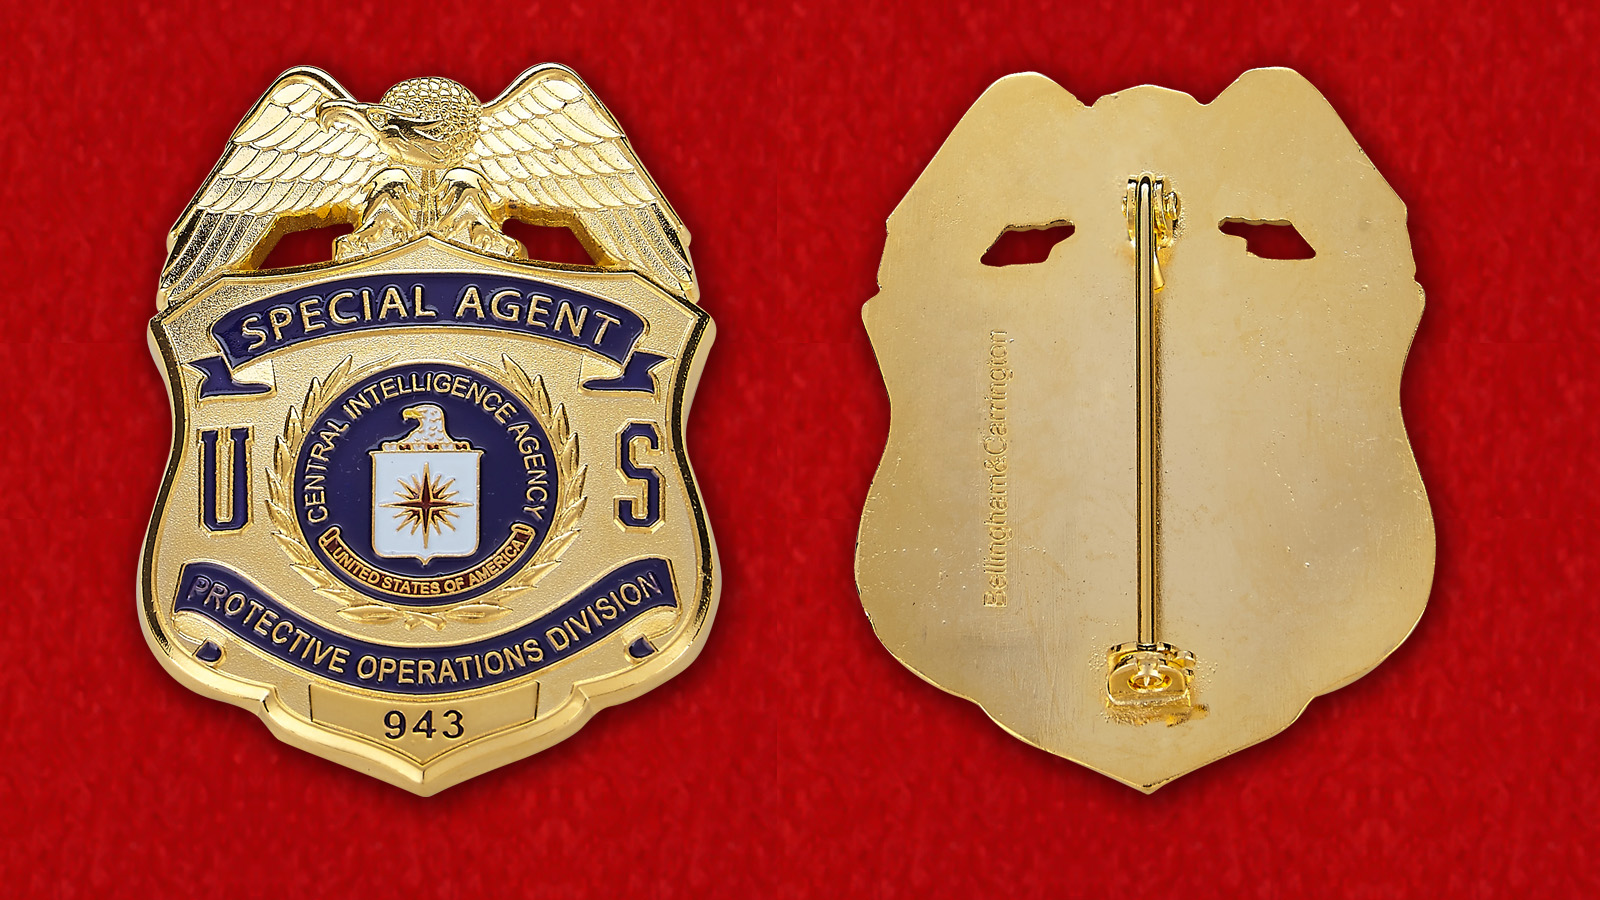 CIA Special Agent Badge - obverse and reverse